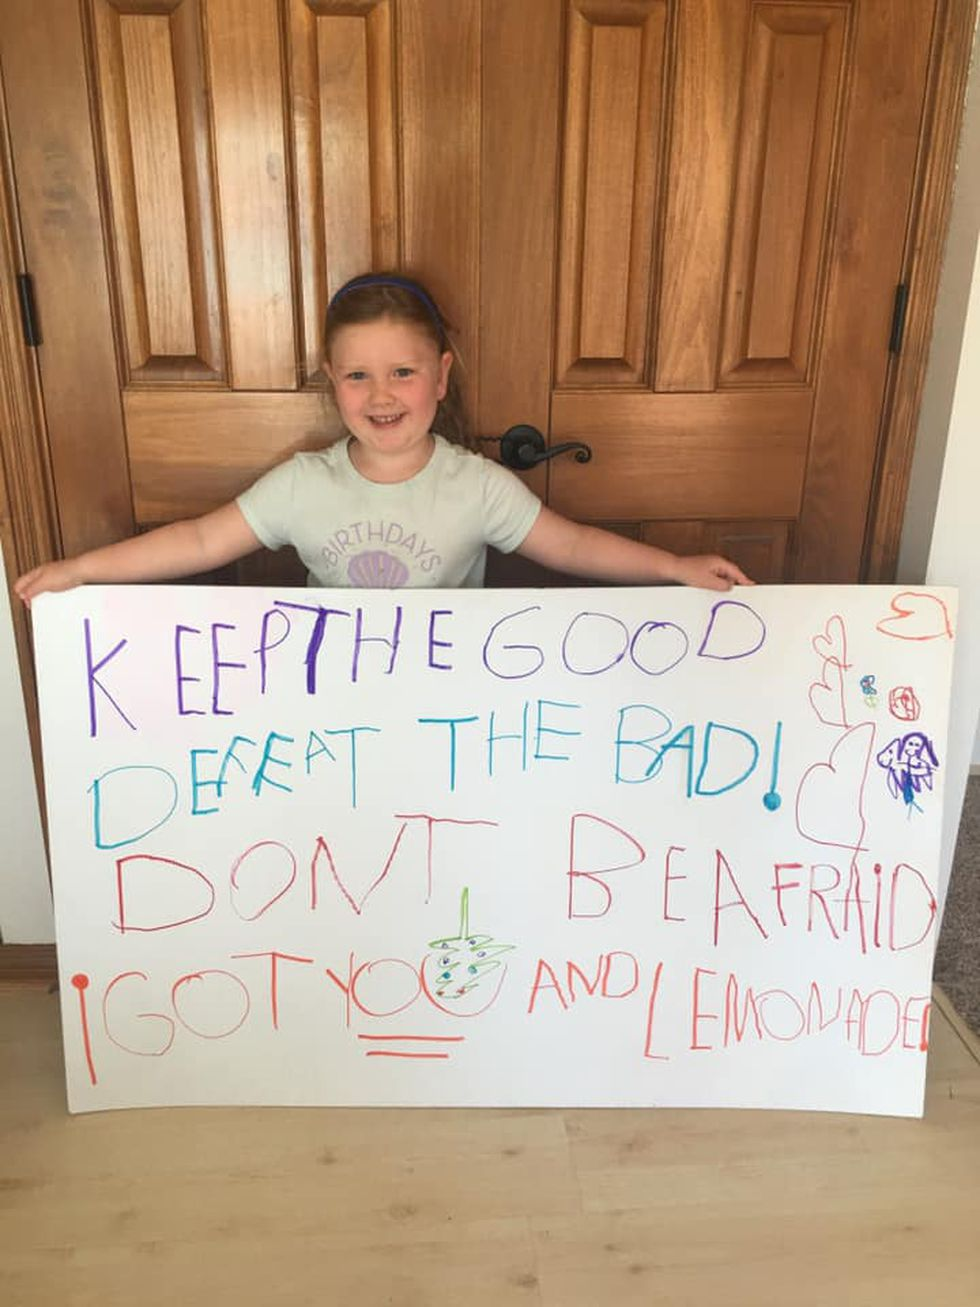 Eleanor Arens of Florence, Kentucky is using lemonade stand to stand against racism